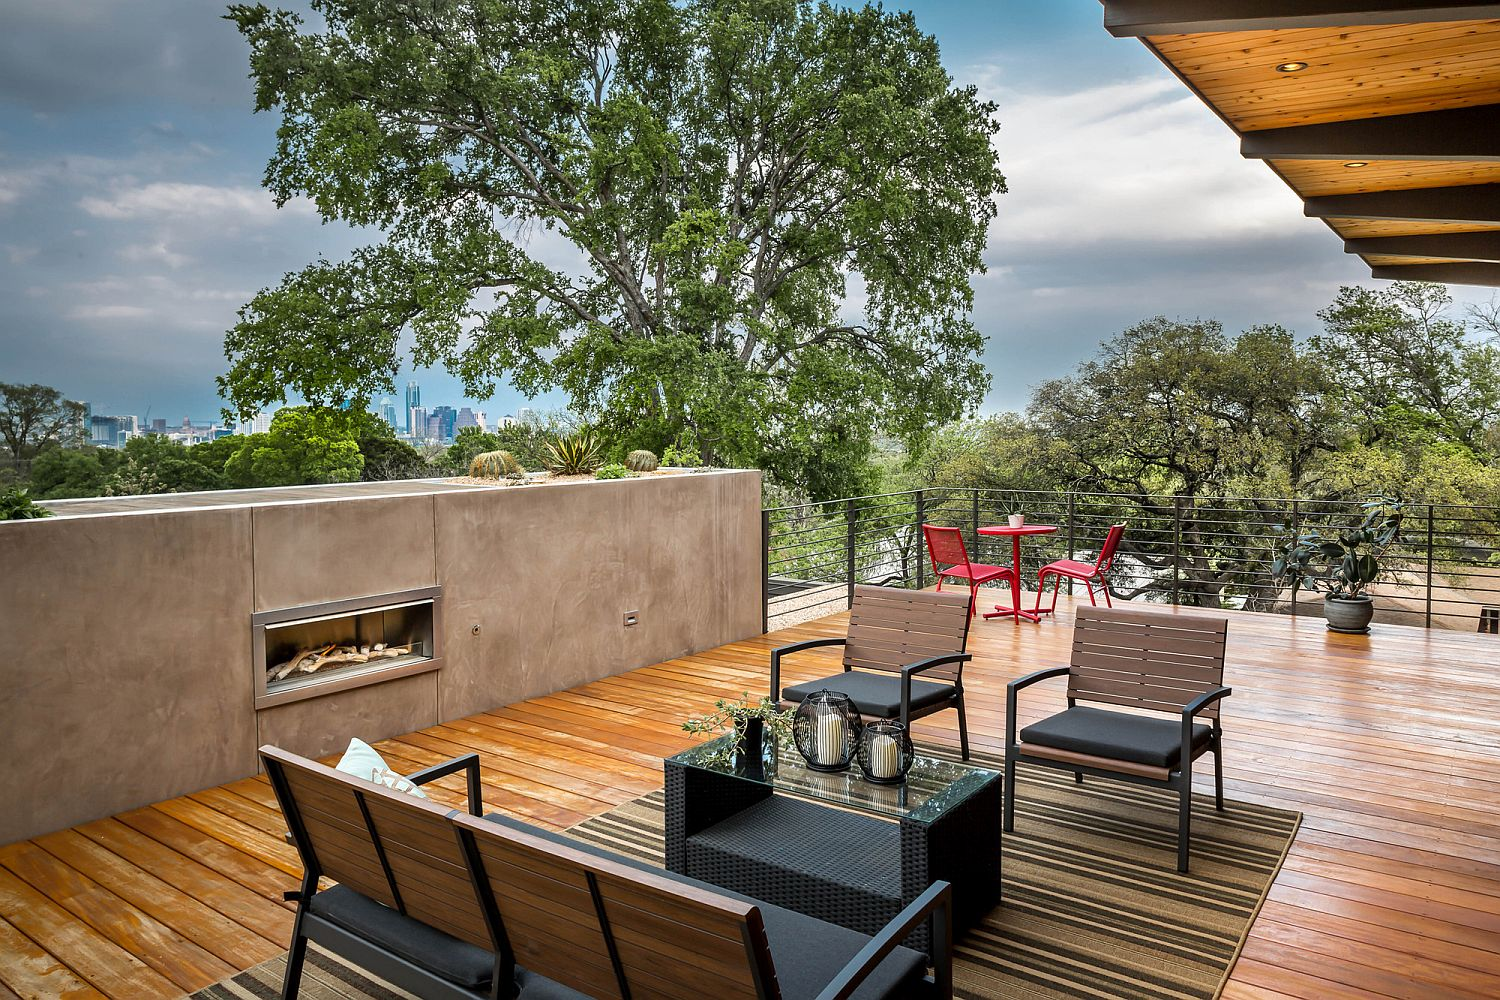 Lavish deck overlooking the lovely landscape and ample greenery